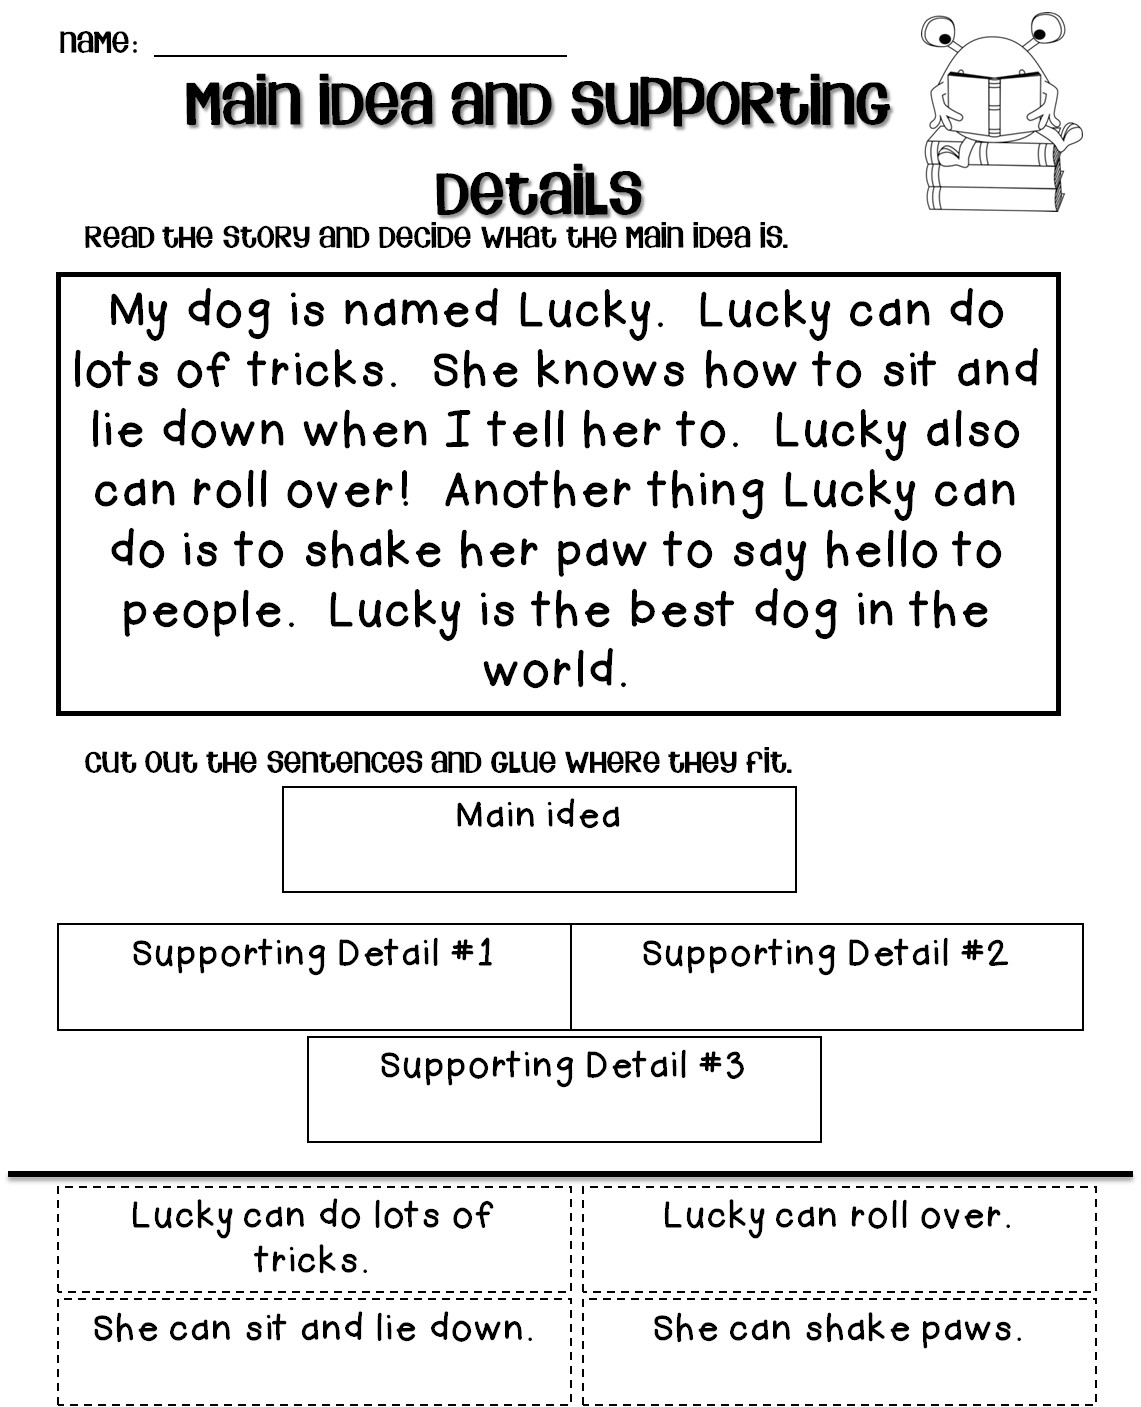 Main Idea Worksheet 4th Grade Fraction Questions Paycheck Worksheets for Students Main